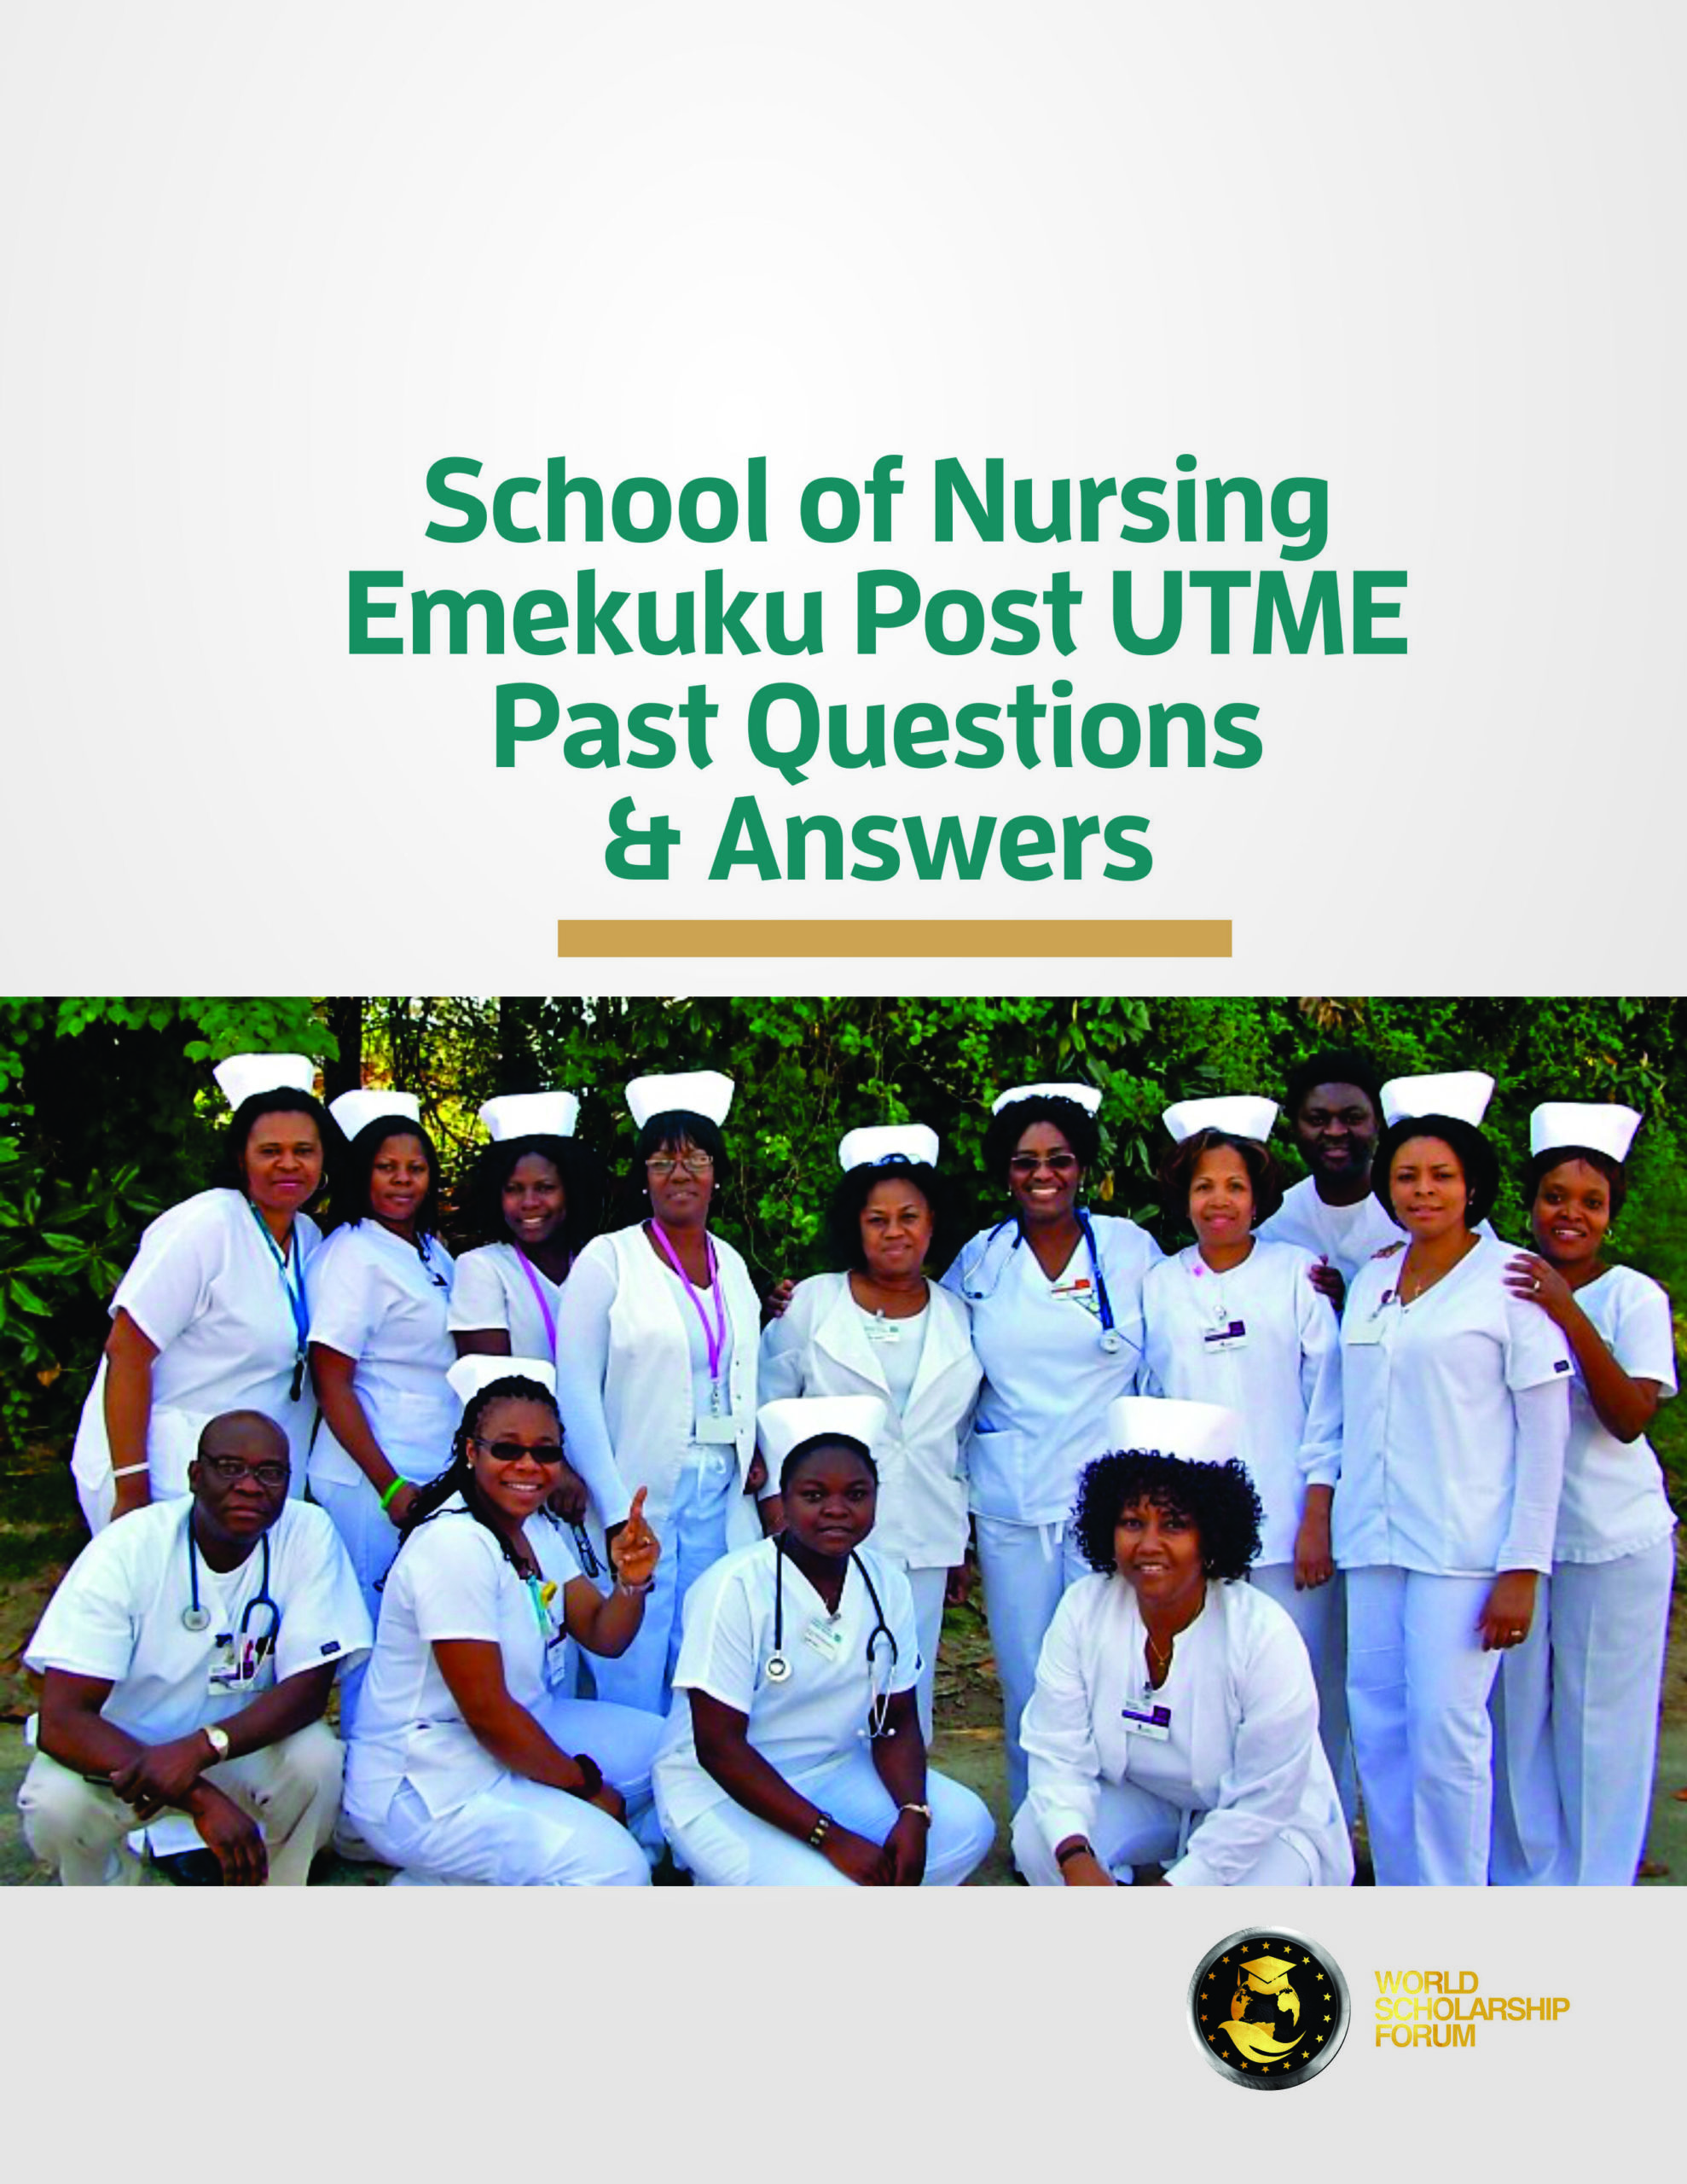 emekuku-school-of-nursing-past-questions